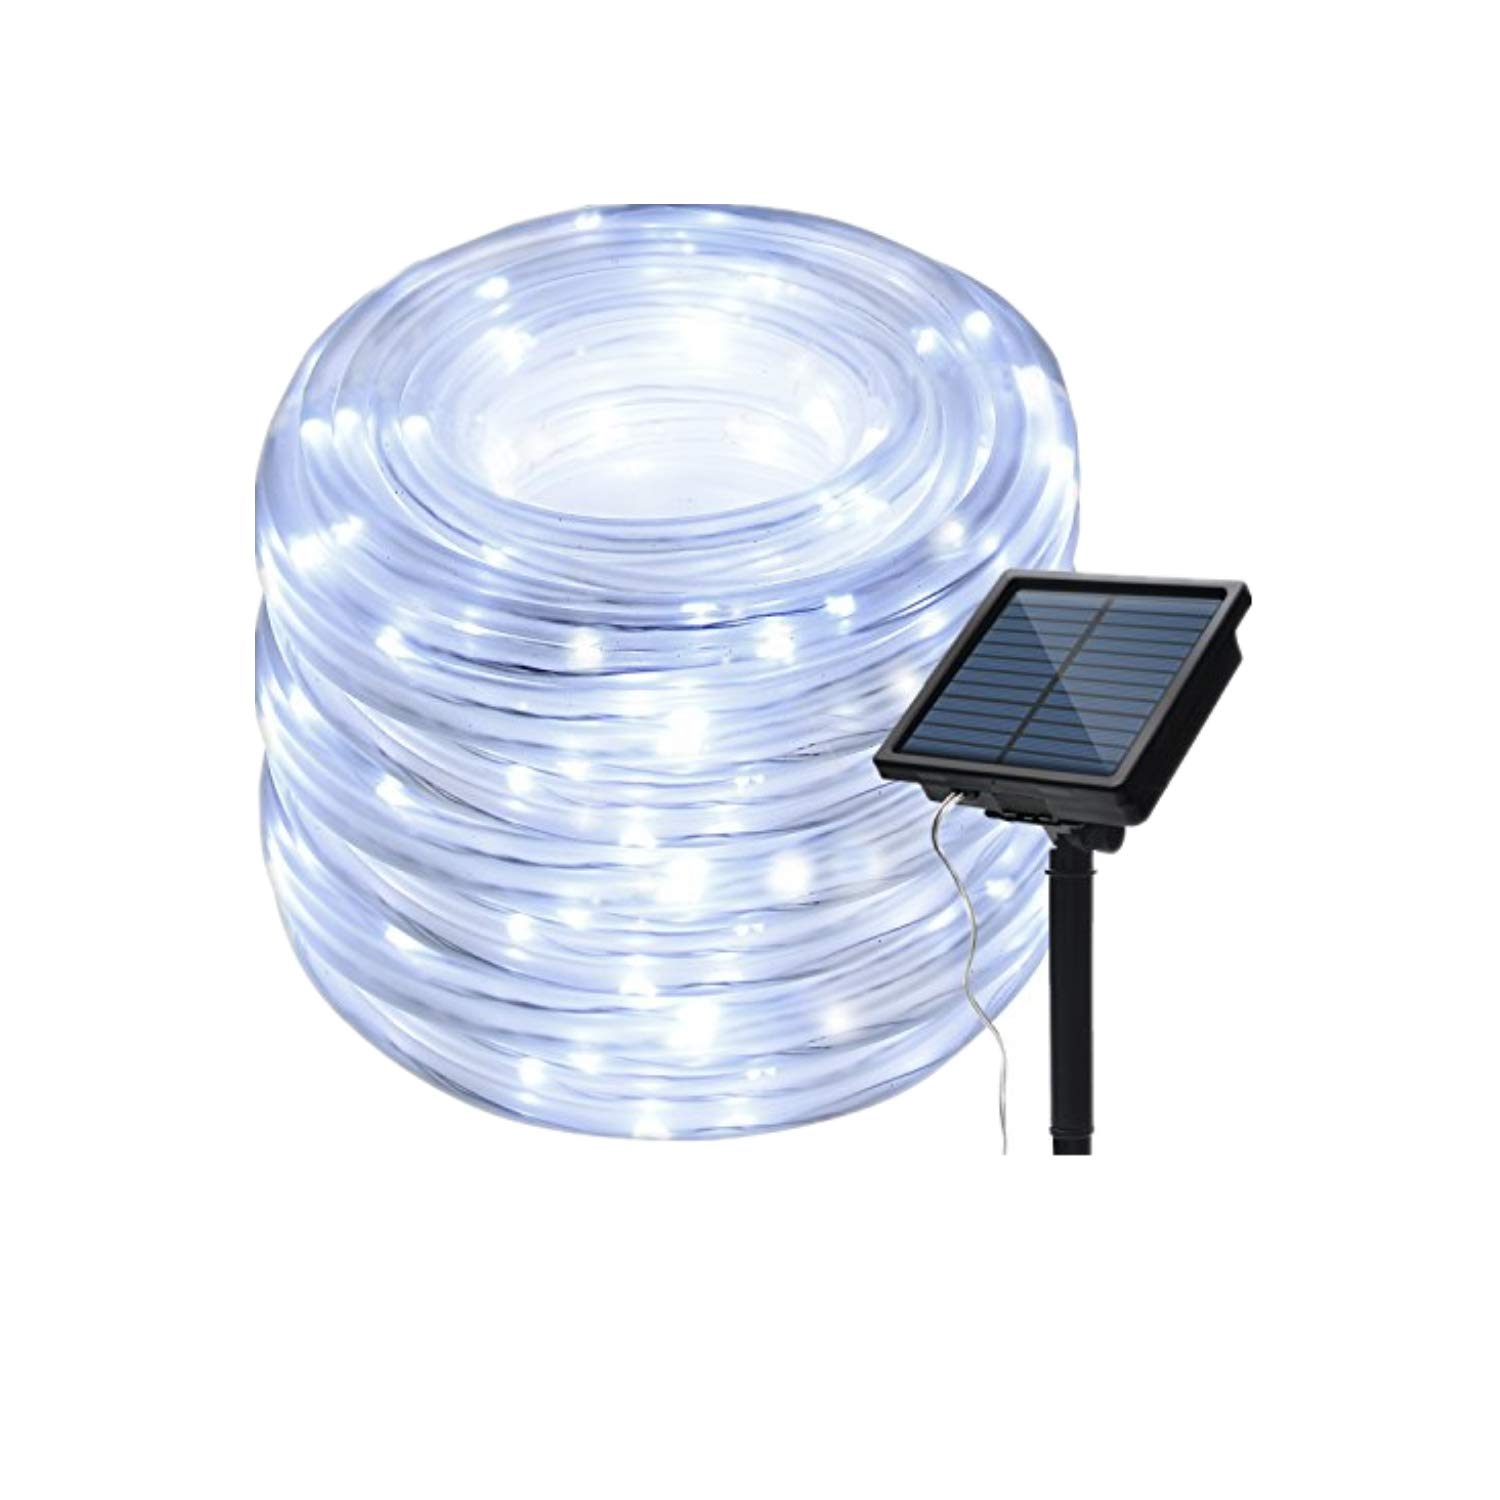 Solar Powered 200 LED Rope Lights By IMAGE